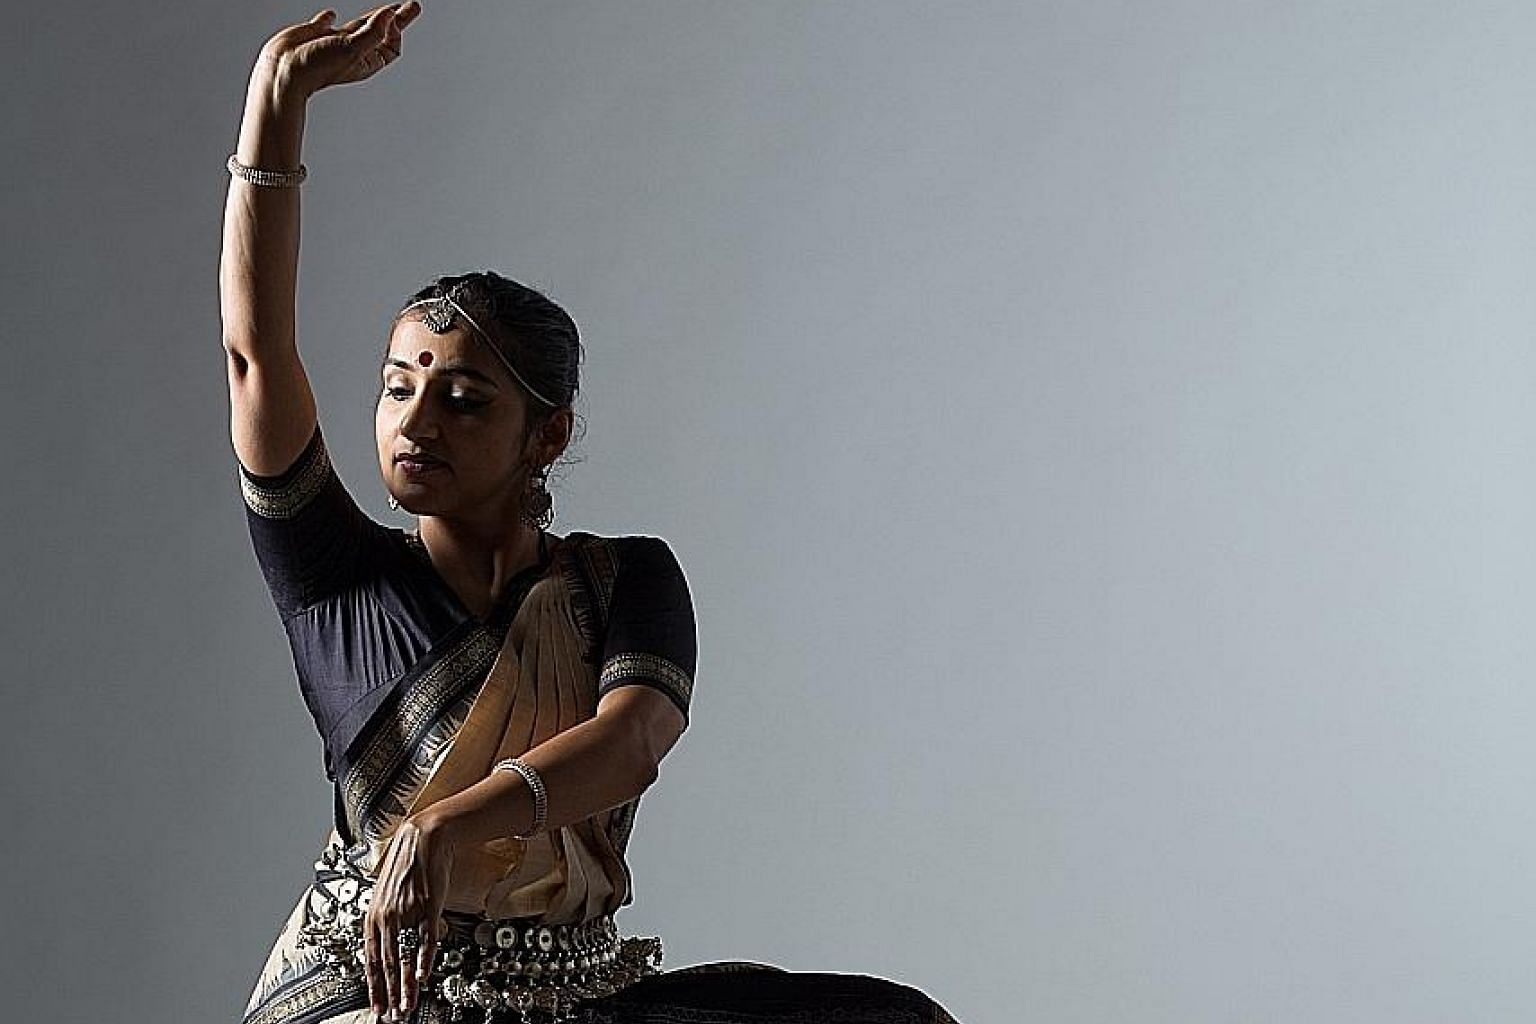 Raka Maitra dances every day for at least four hours.